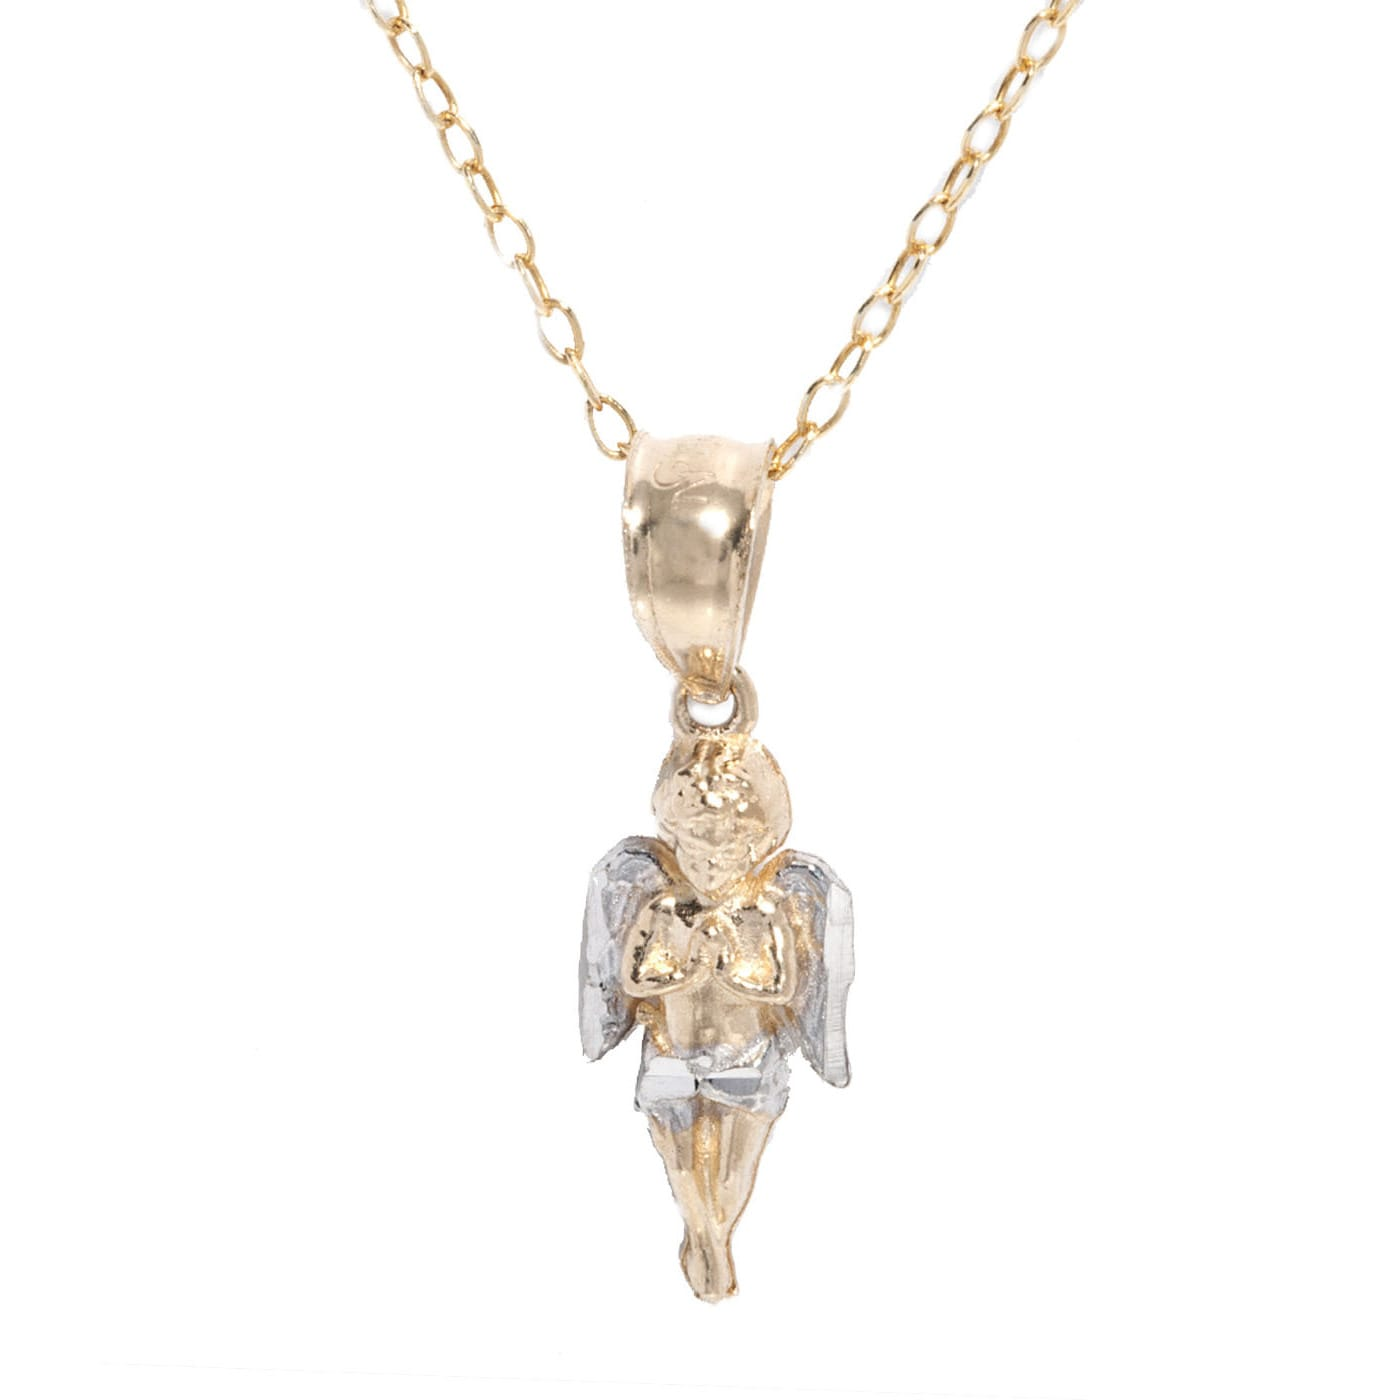 chain guardian yellow angel com cherub jewelry rope tone amazon necklace and pendant dp gold